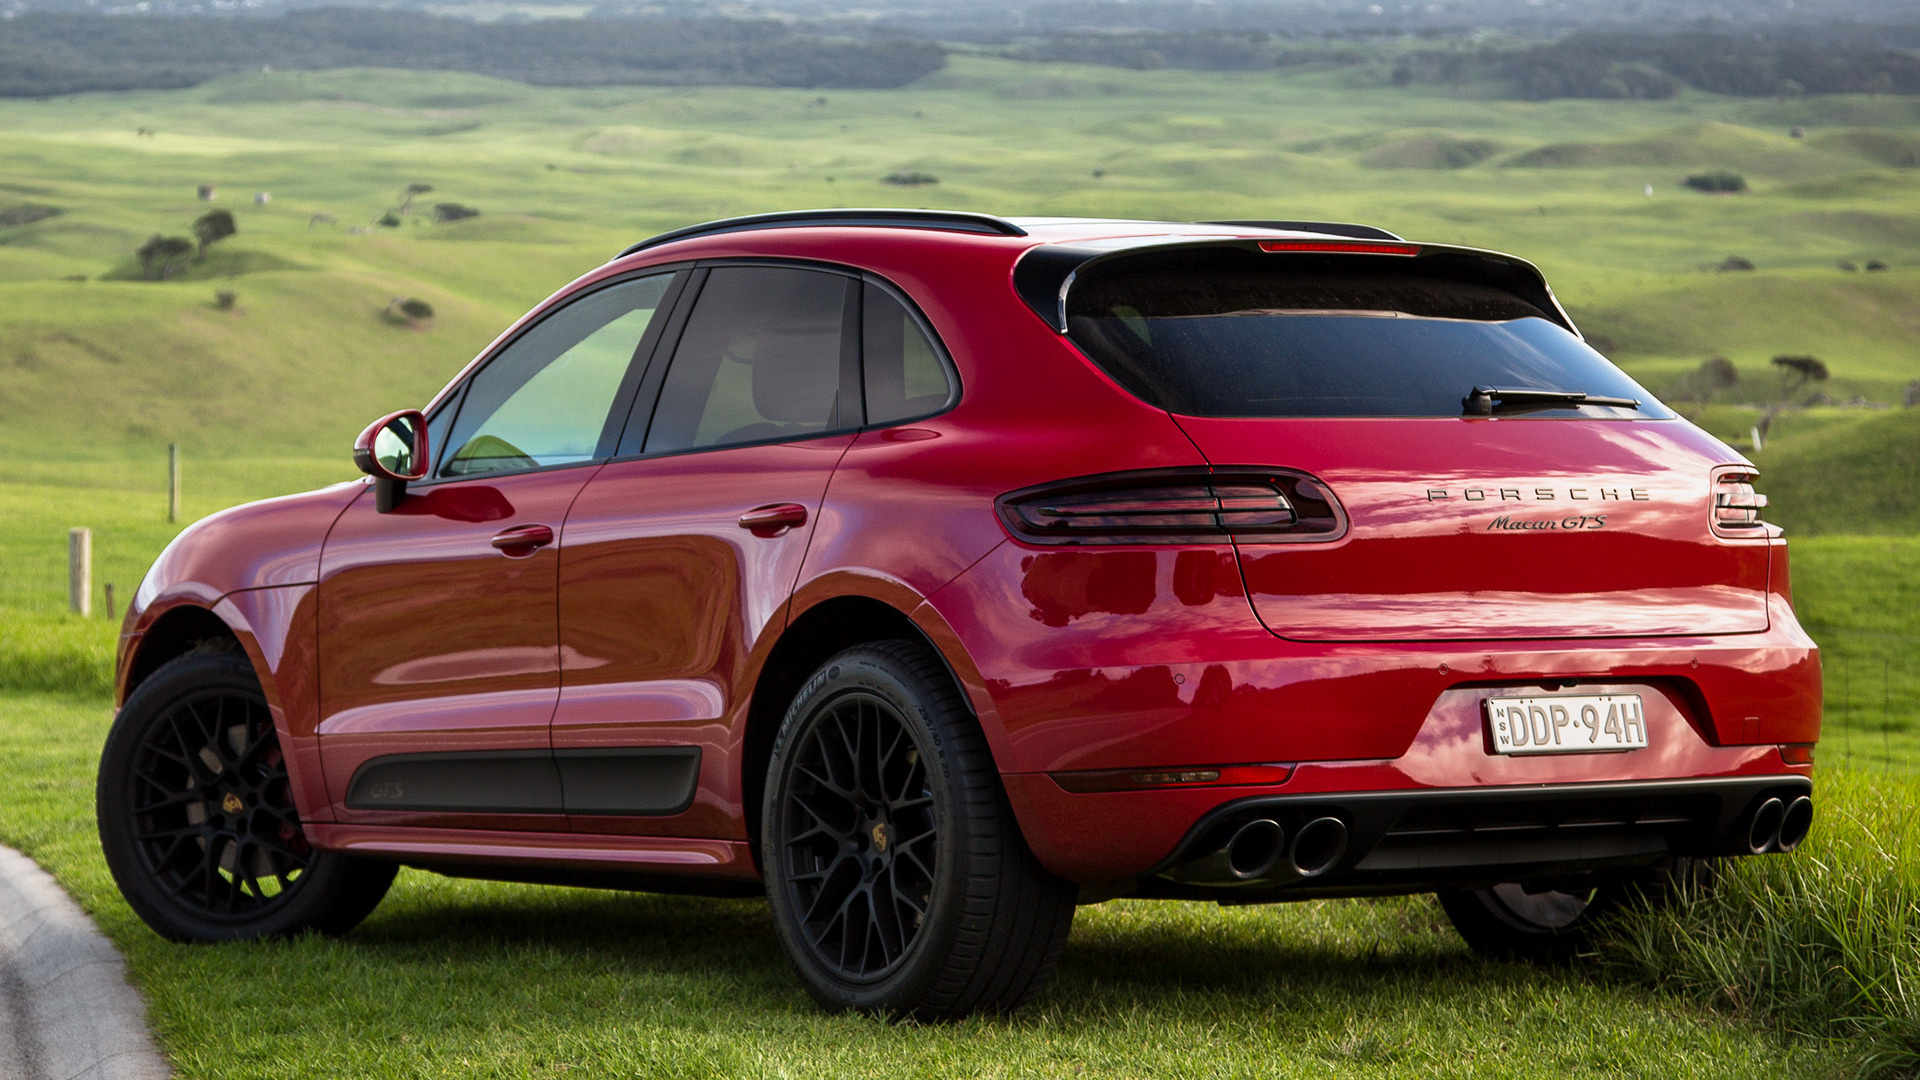 Porsche Macan GTS (2016) AU Wallpapers and HD Images - Car ...